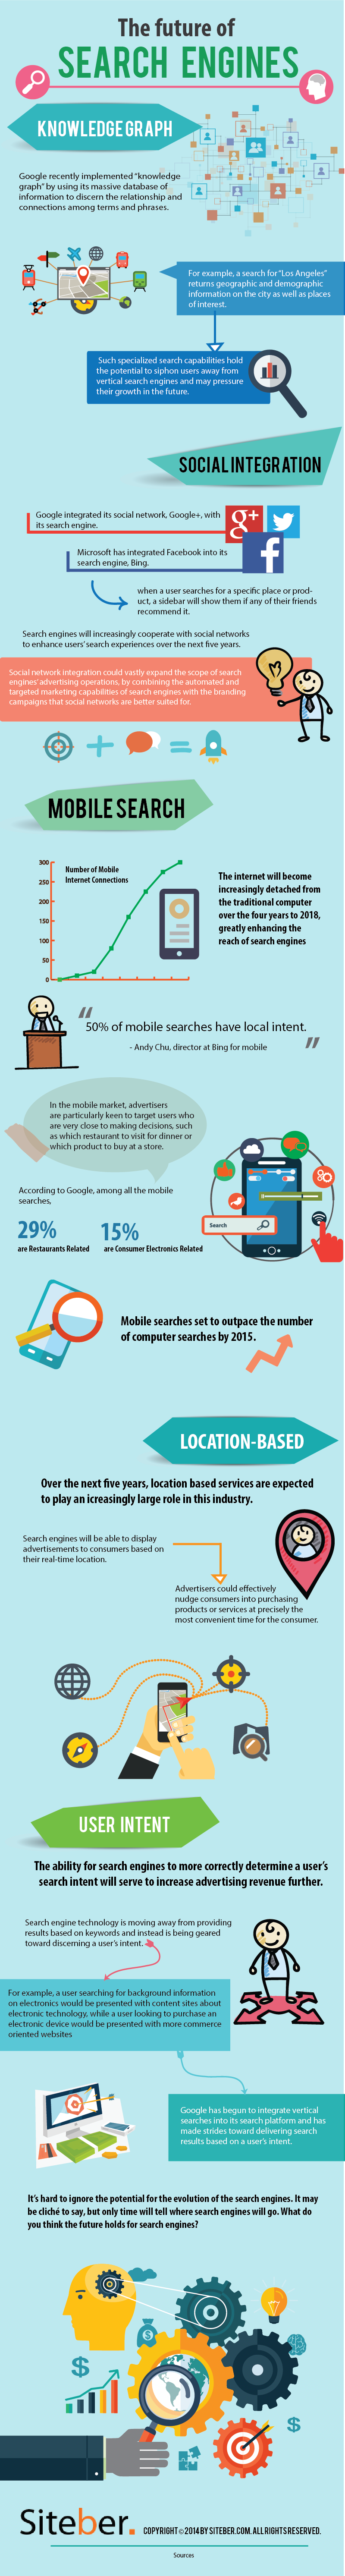 The Future of Search Engines [Infographic] – An Infographic from Siteber